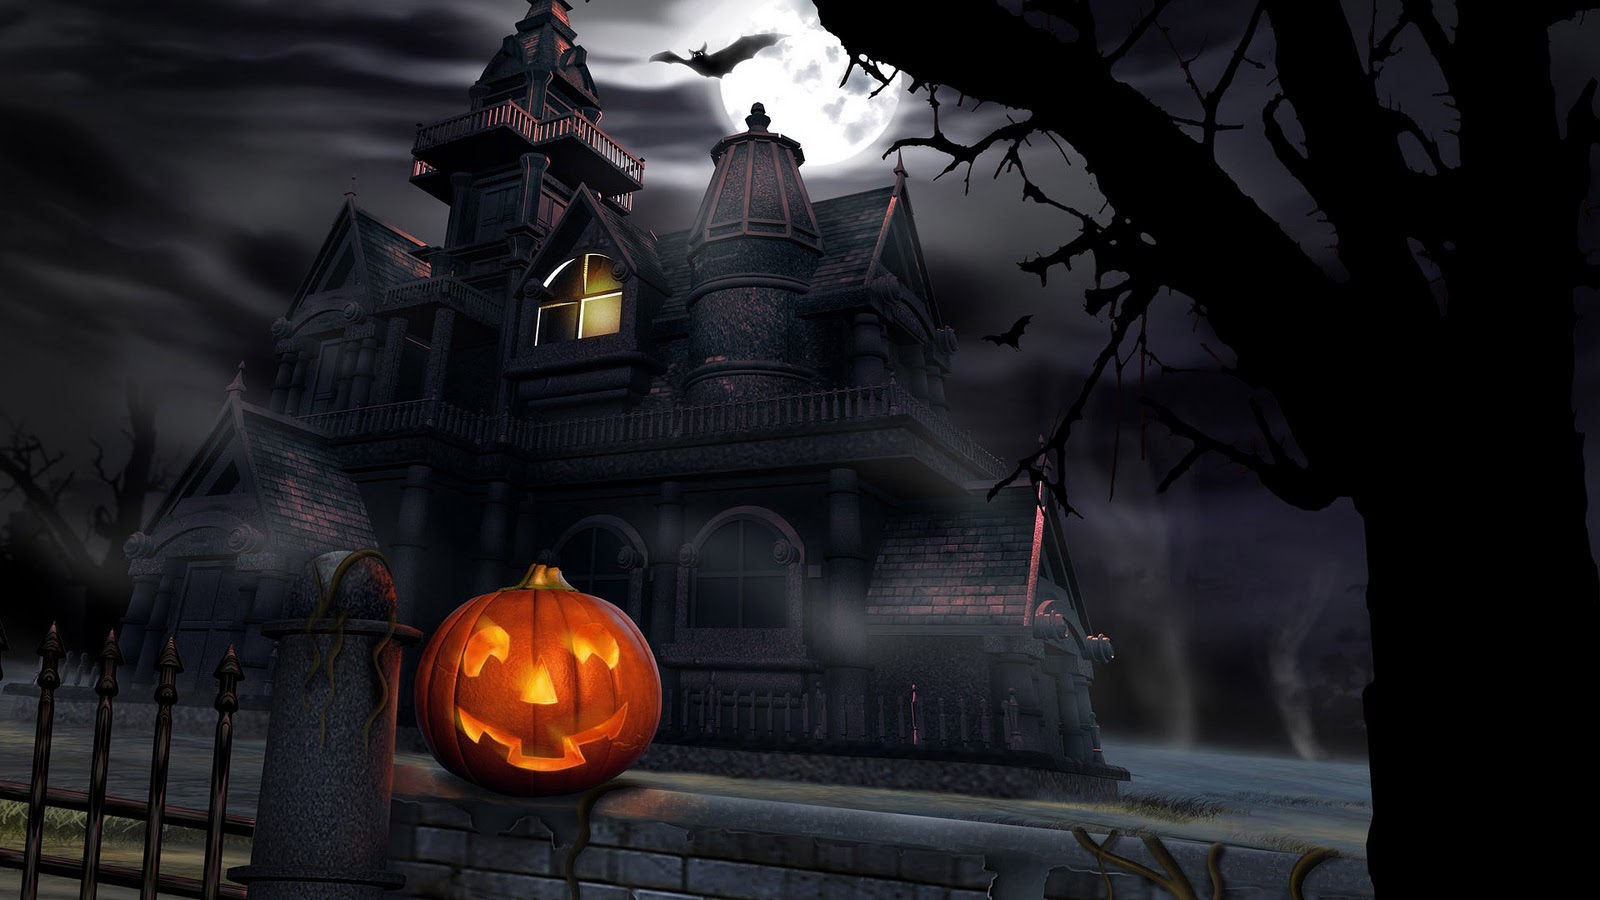 ATTRACTIVE HALLOWEEN PUMPKIN NEON BEAUTIFUL 3D HD QUALITY DESKTOP ...